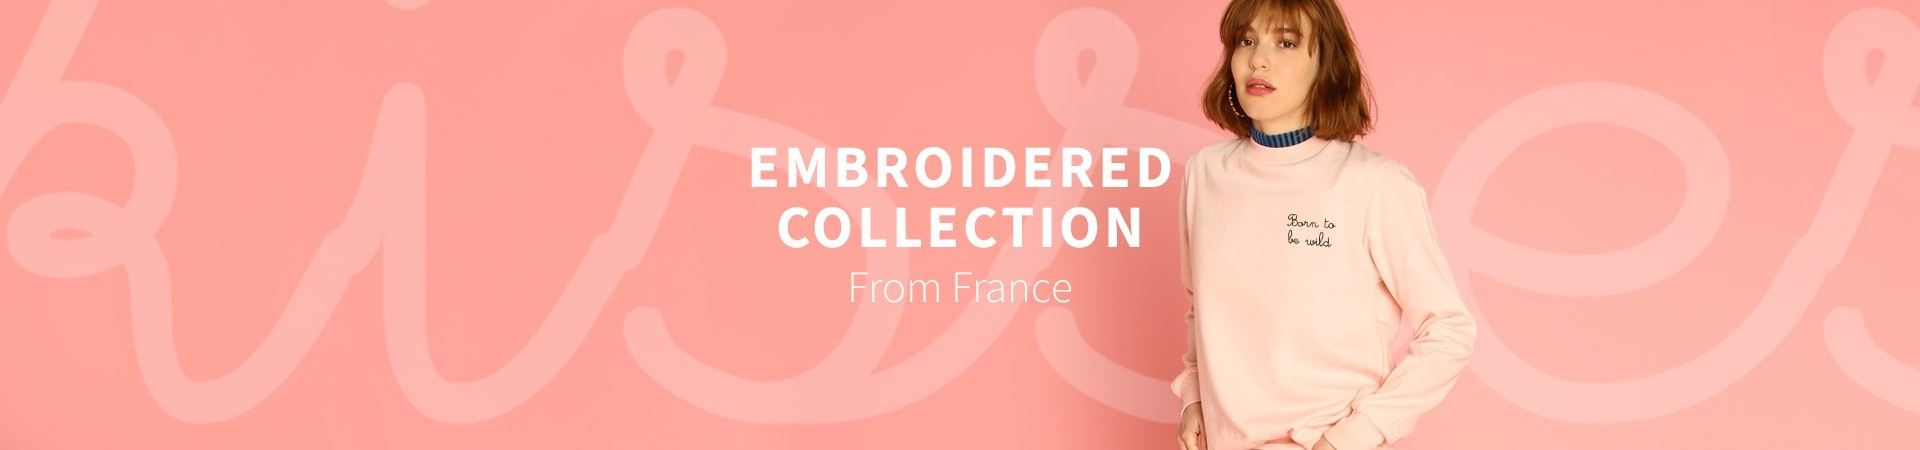 Embroidered Collection